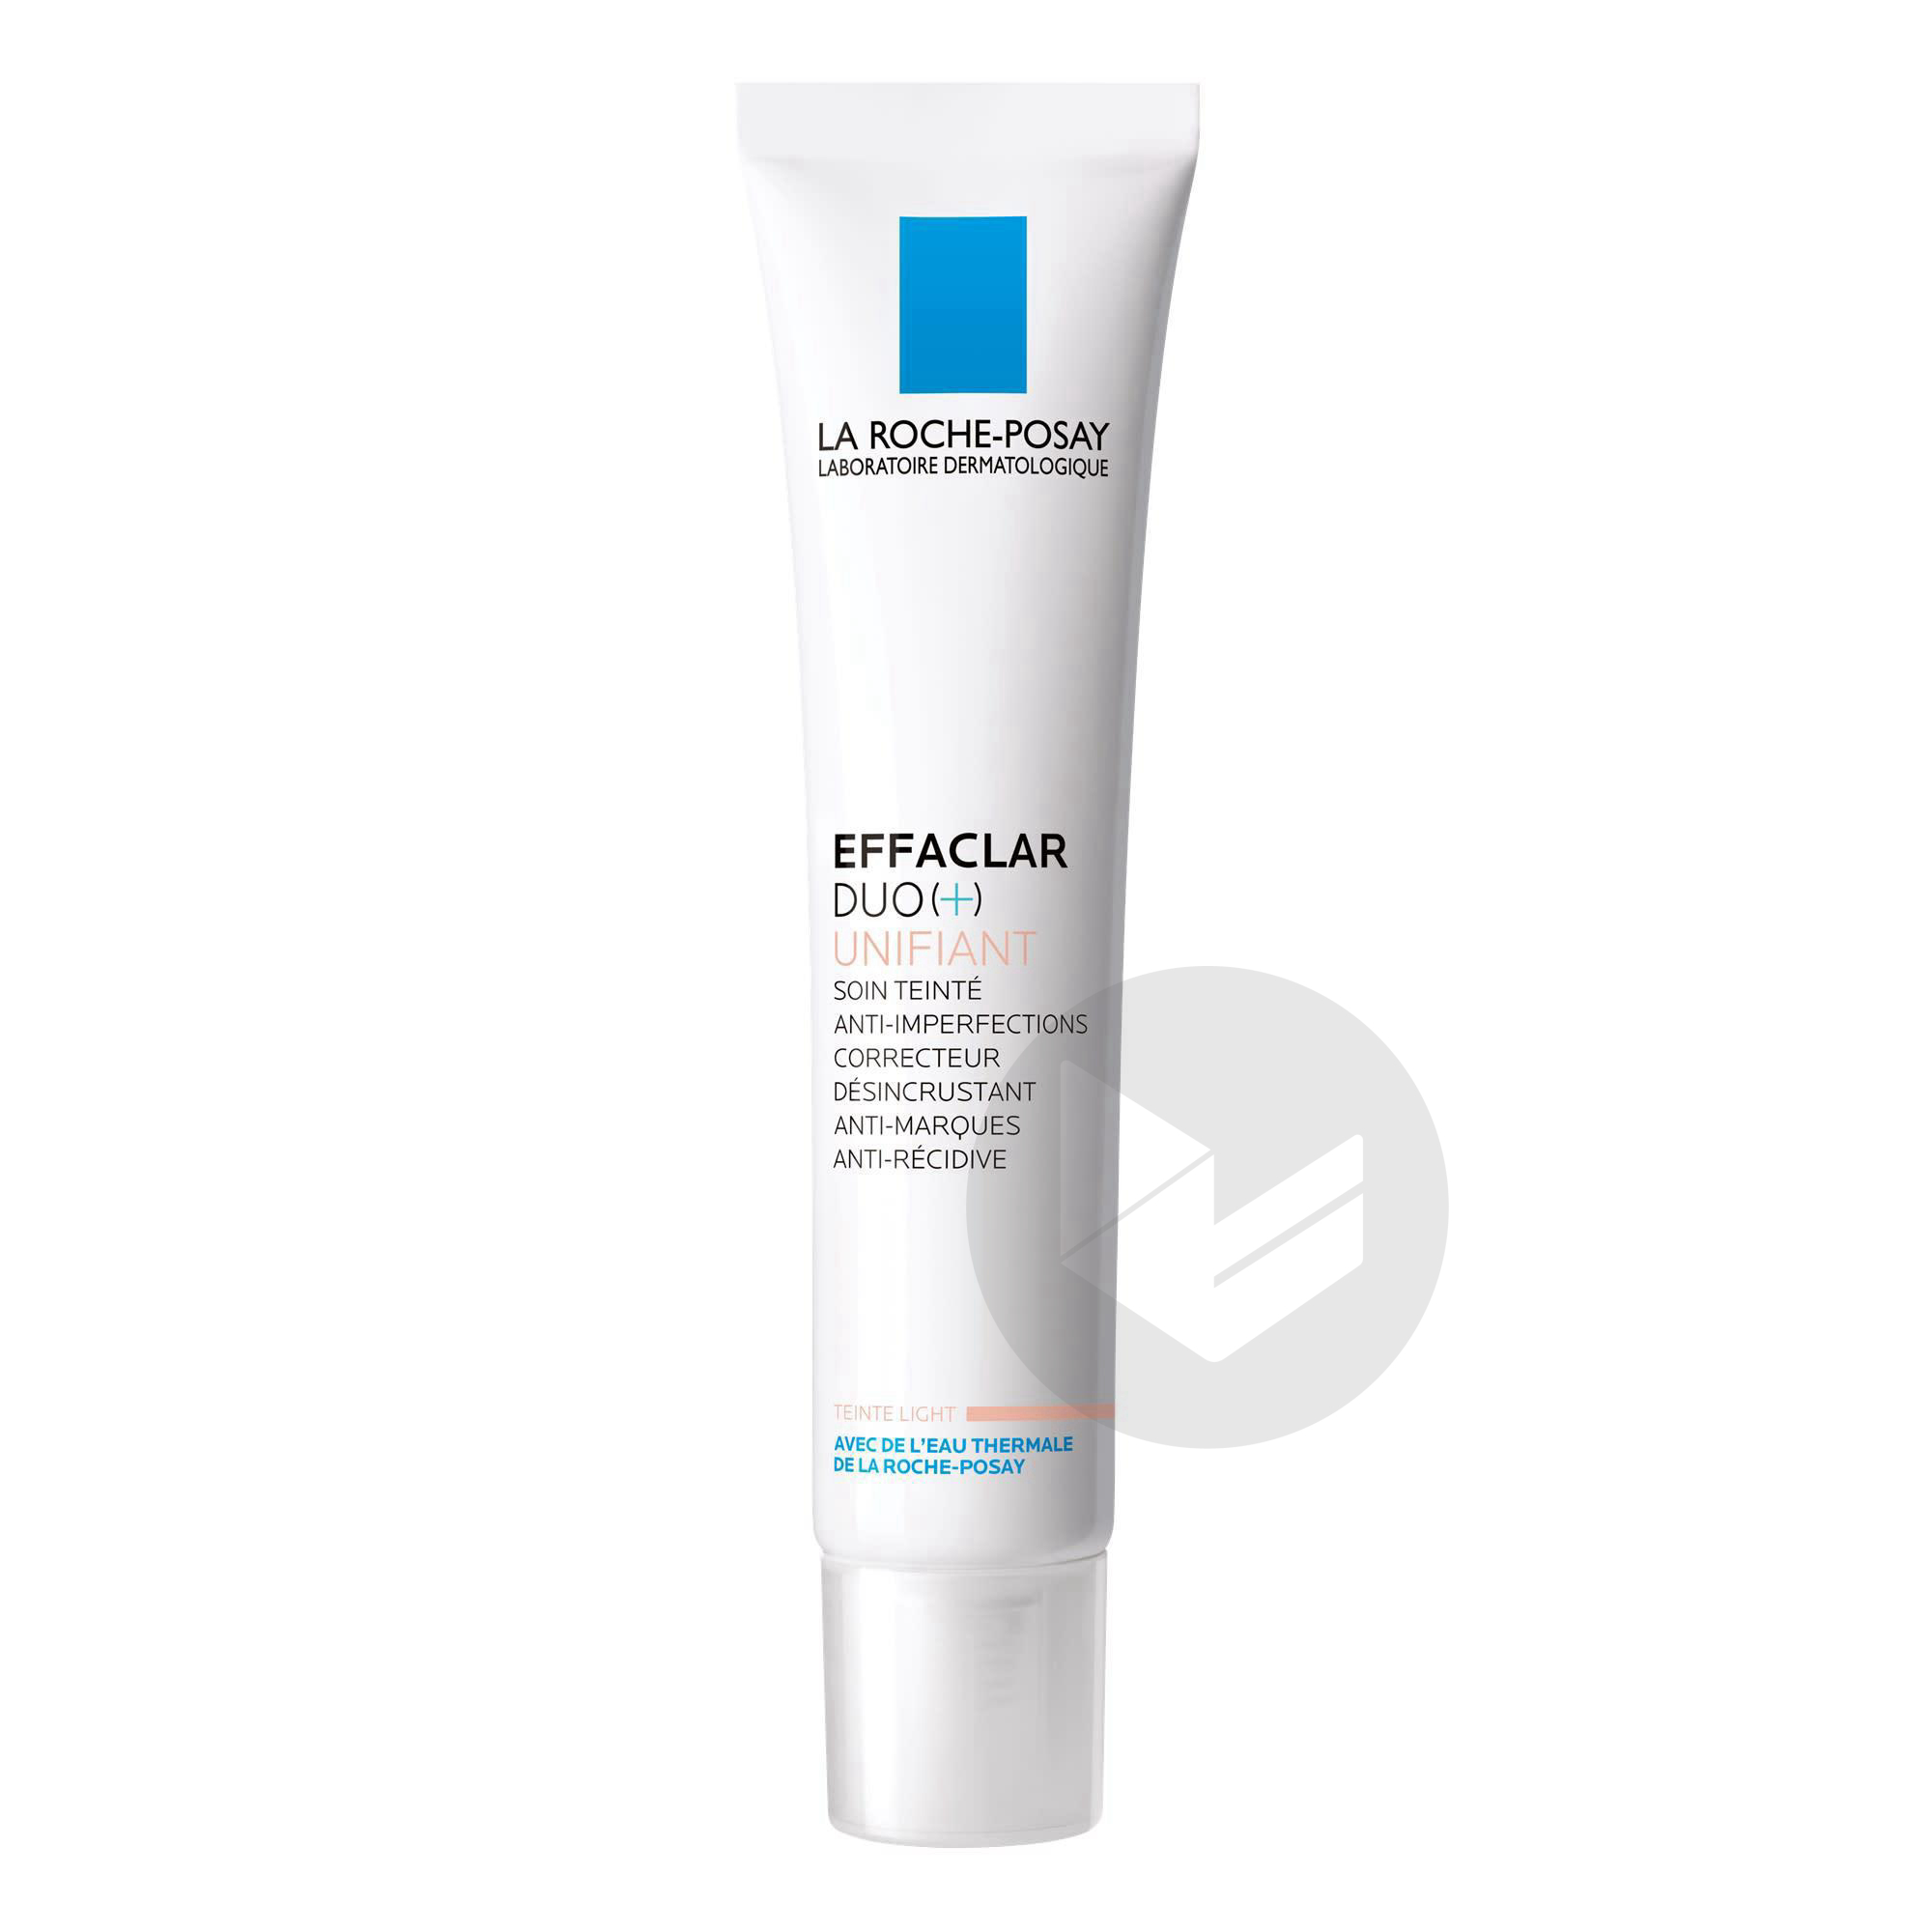 Effaclar Duo (+) Soin teinté anti-imperfections, anti-marques et anti-récidive (teinte light) 40ml, Teinte Light